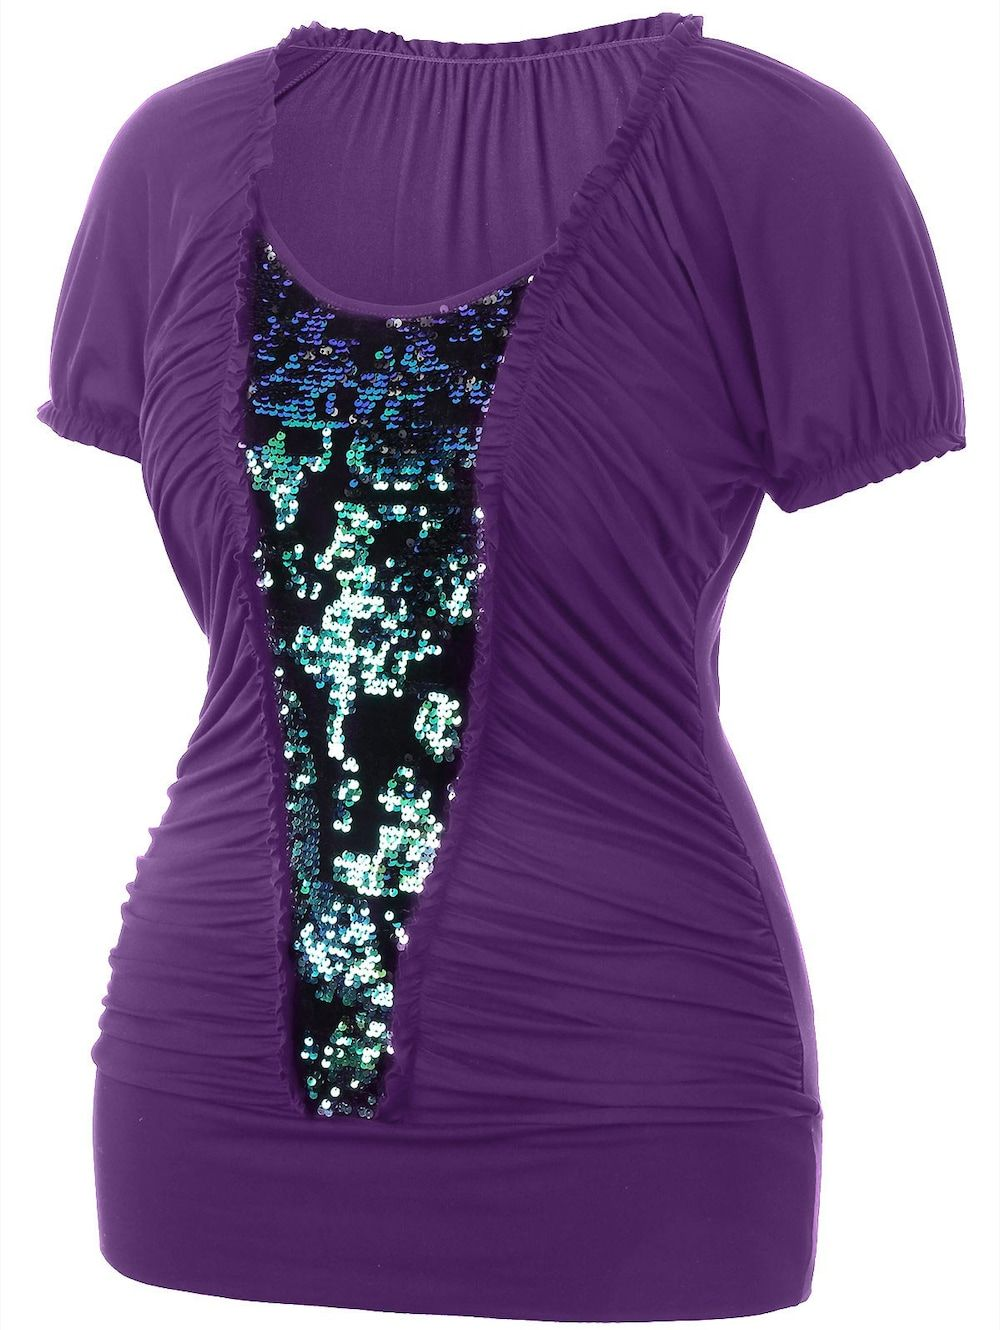 922361ad933 Plus Size Sequined Insert Ruched T-shirt - PURPLE 2X